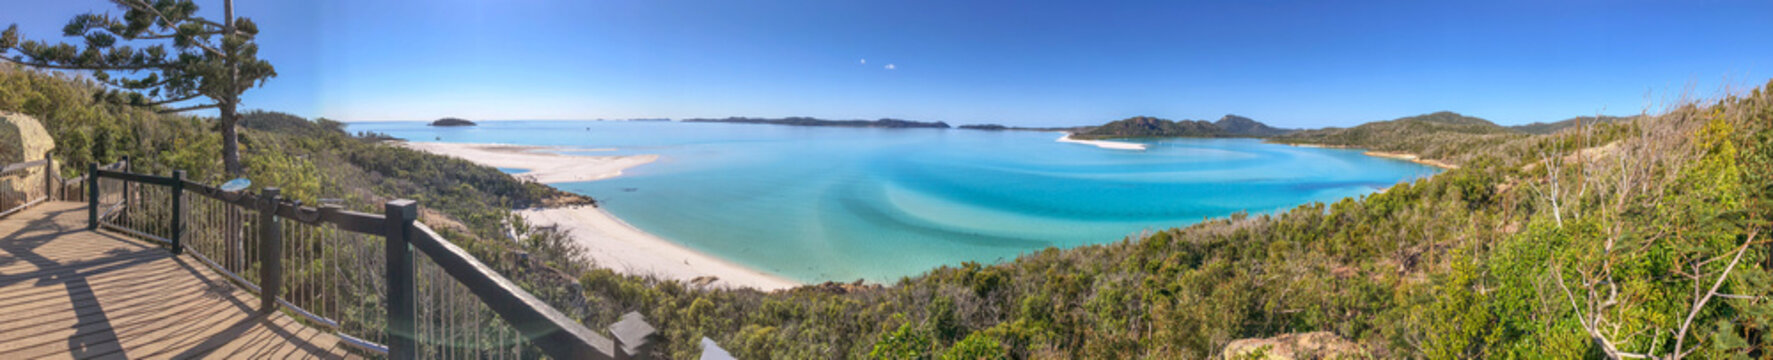 Panoramic aerial view of Whitehaven Beach from Hill Inlet, Queensland - Australia